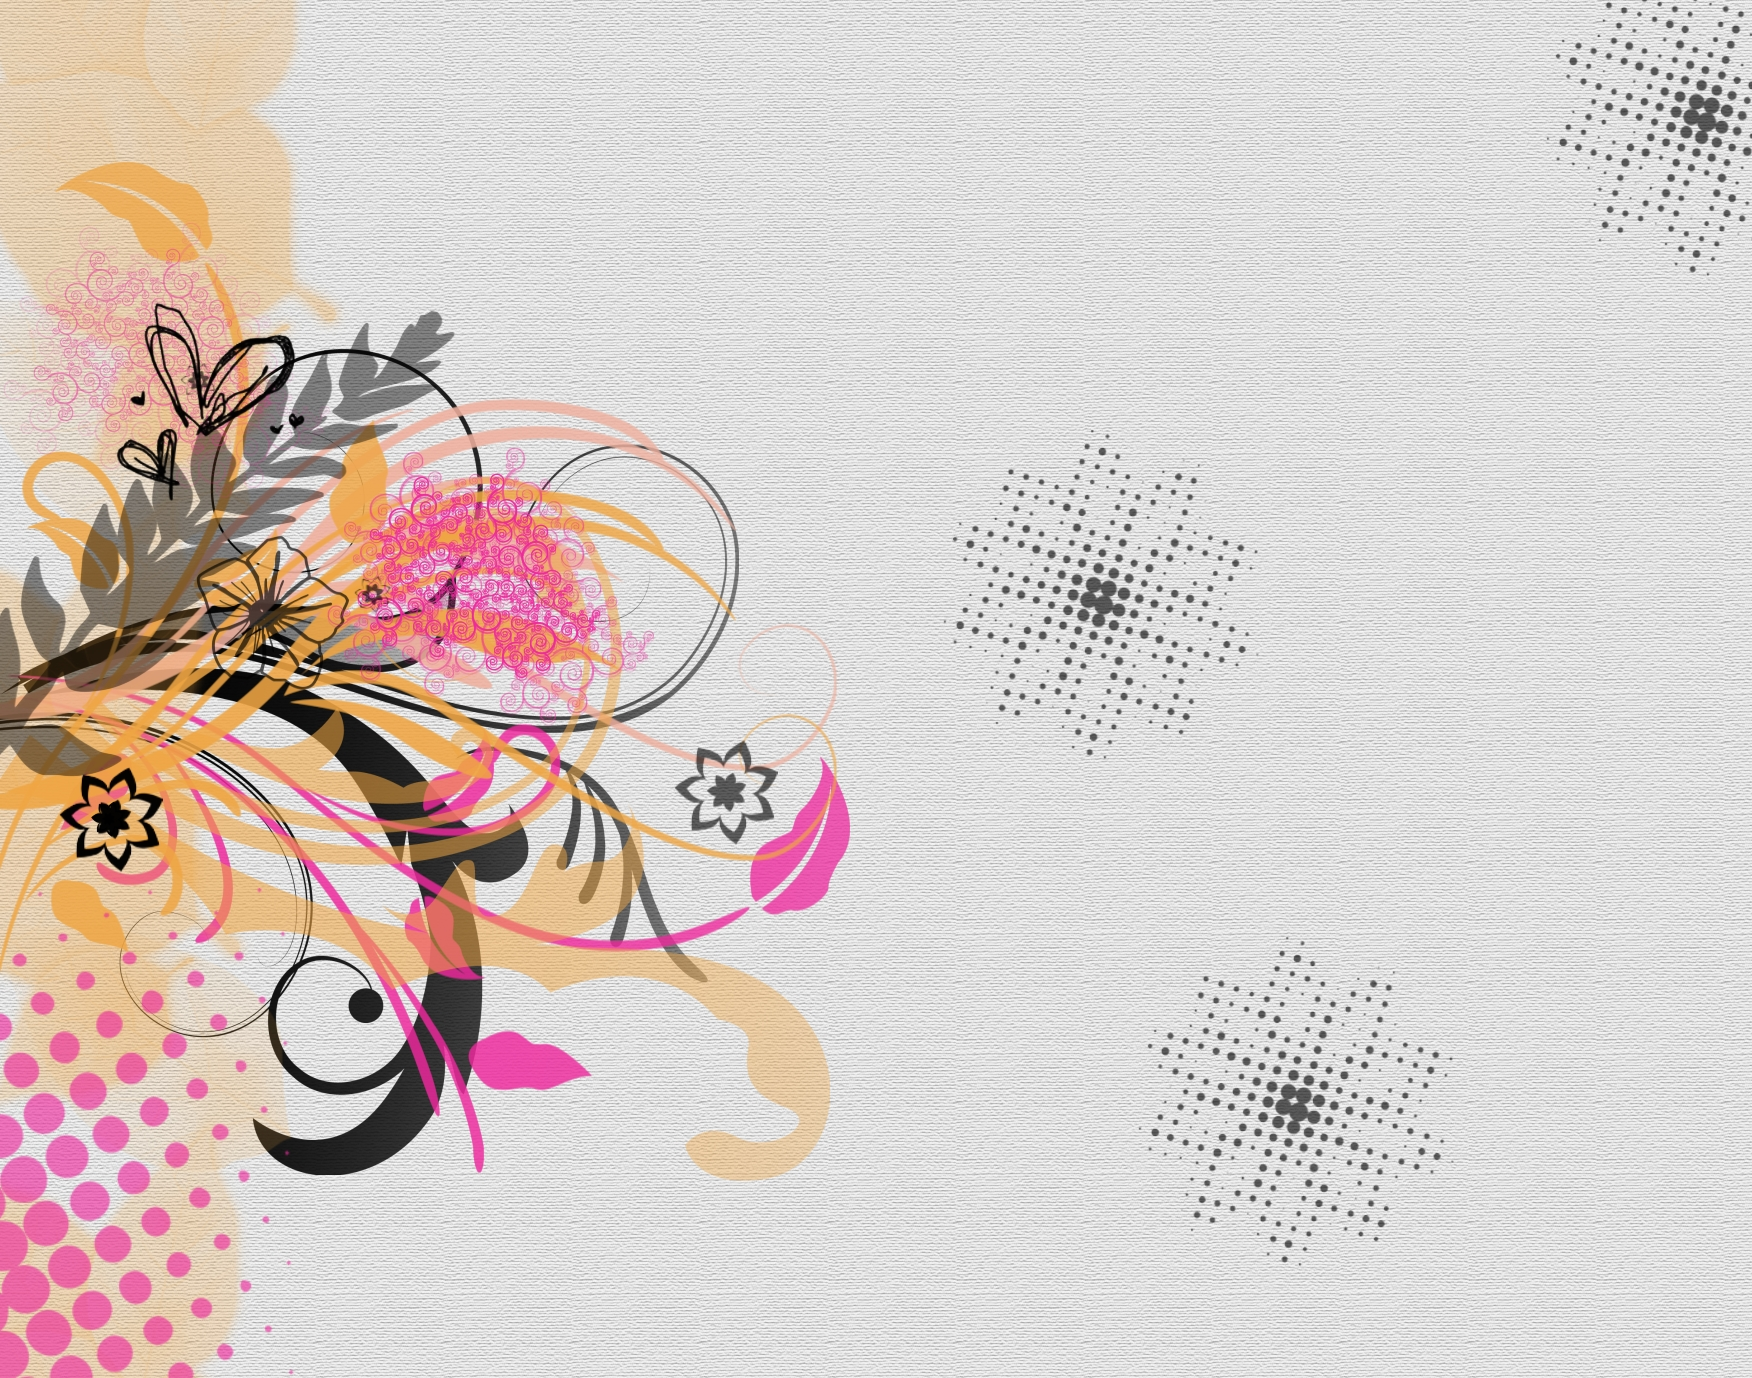 Floral Abstract Design Backgrounds